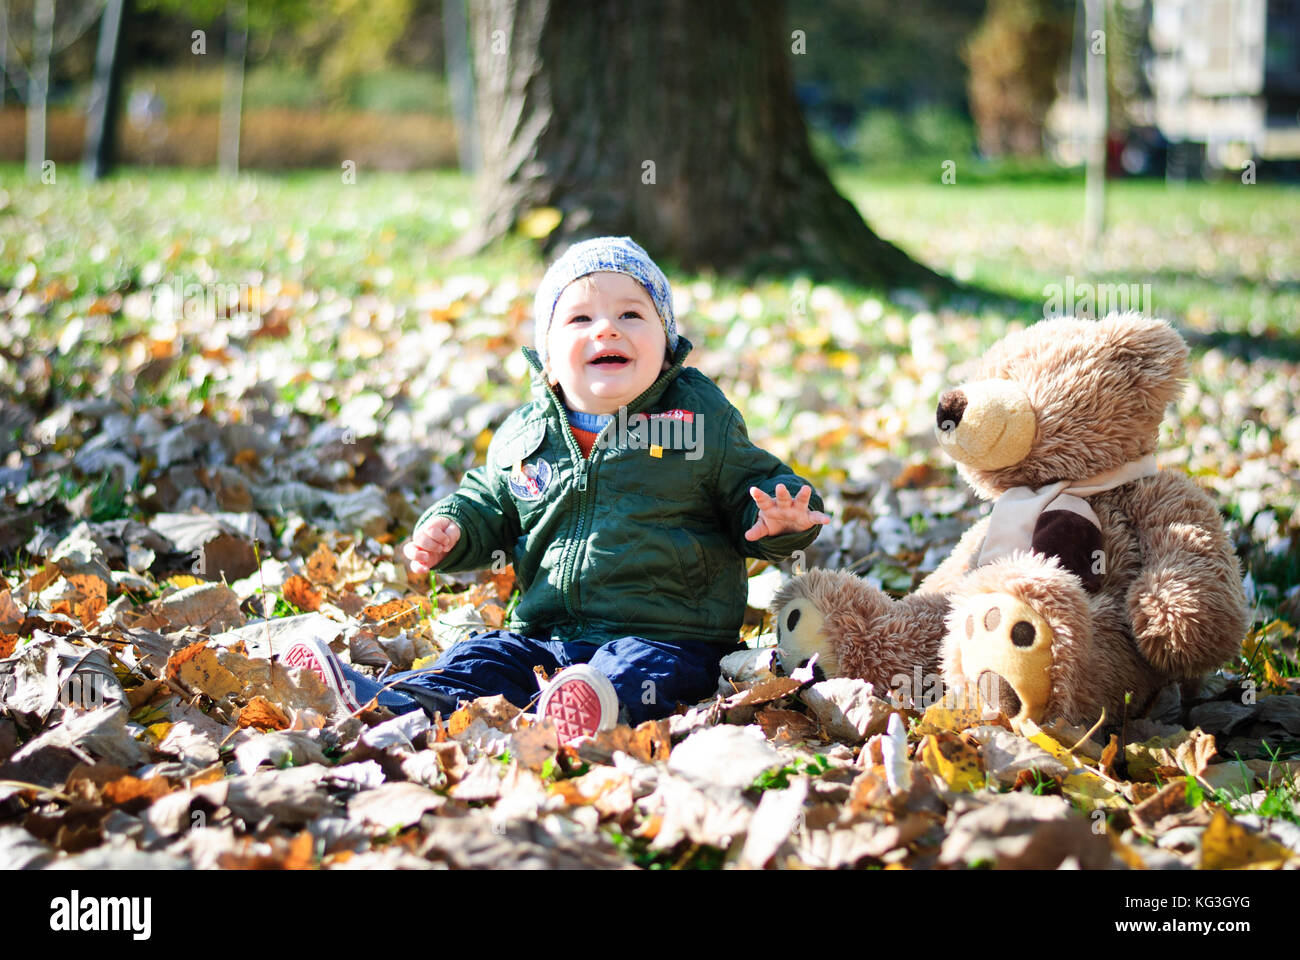 Little boy explores the world of groping something on a tree in the woods - Stock Image